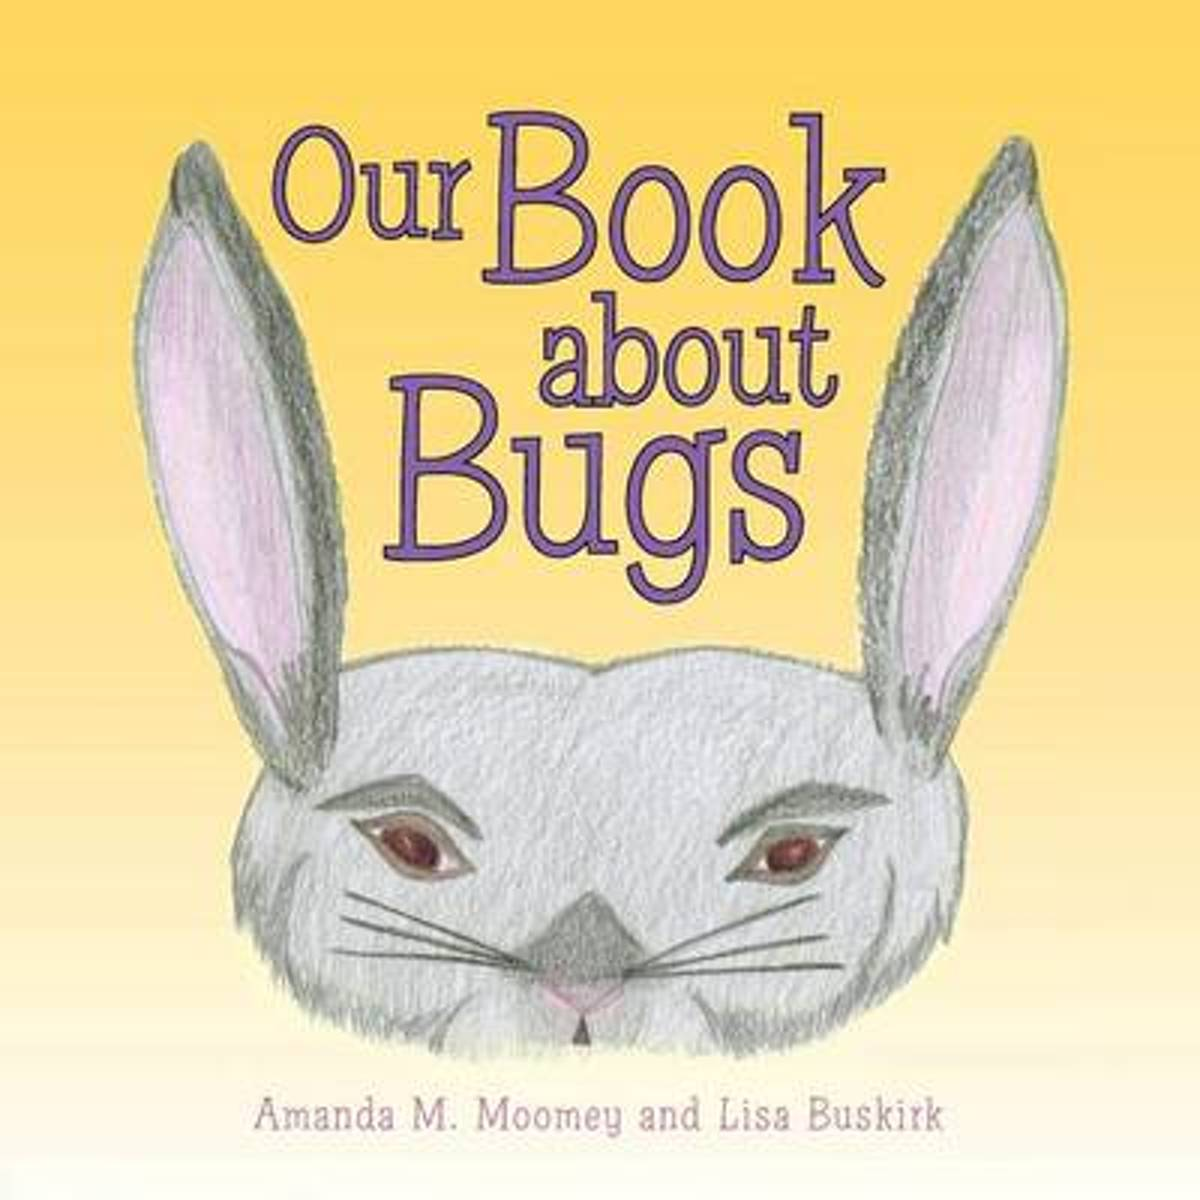 Our Book about Bugs